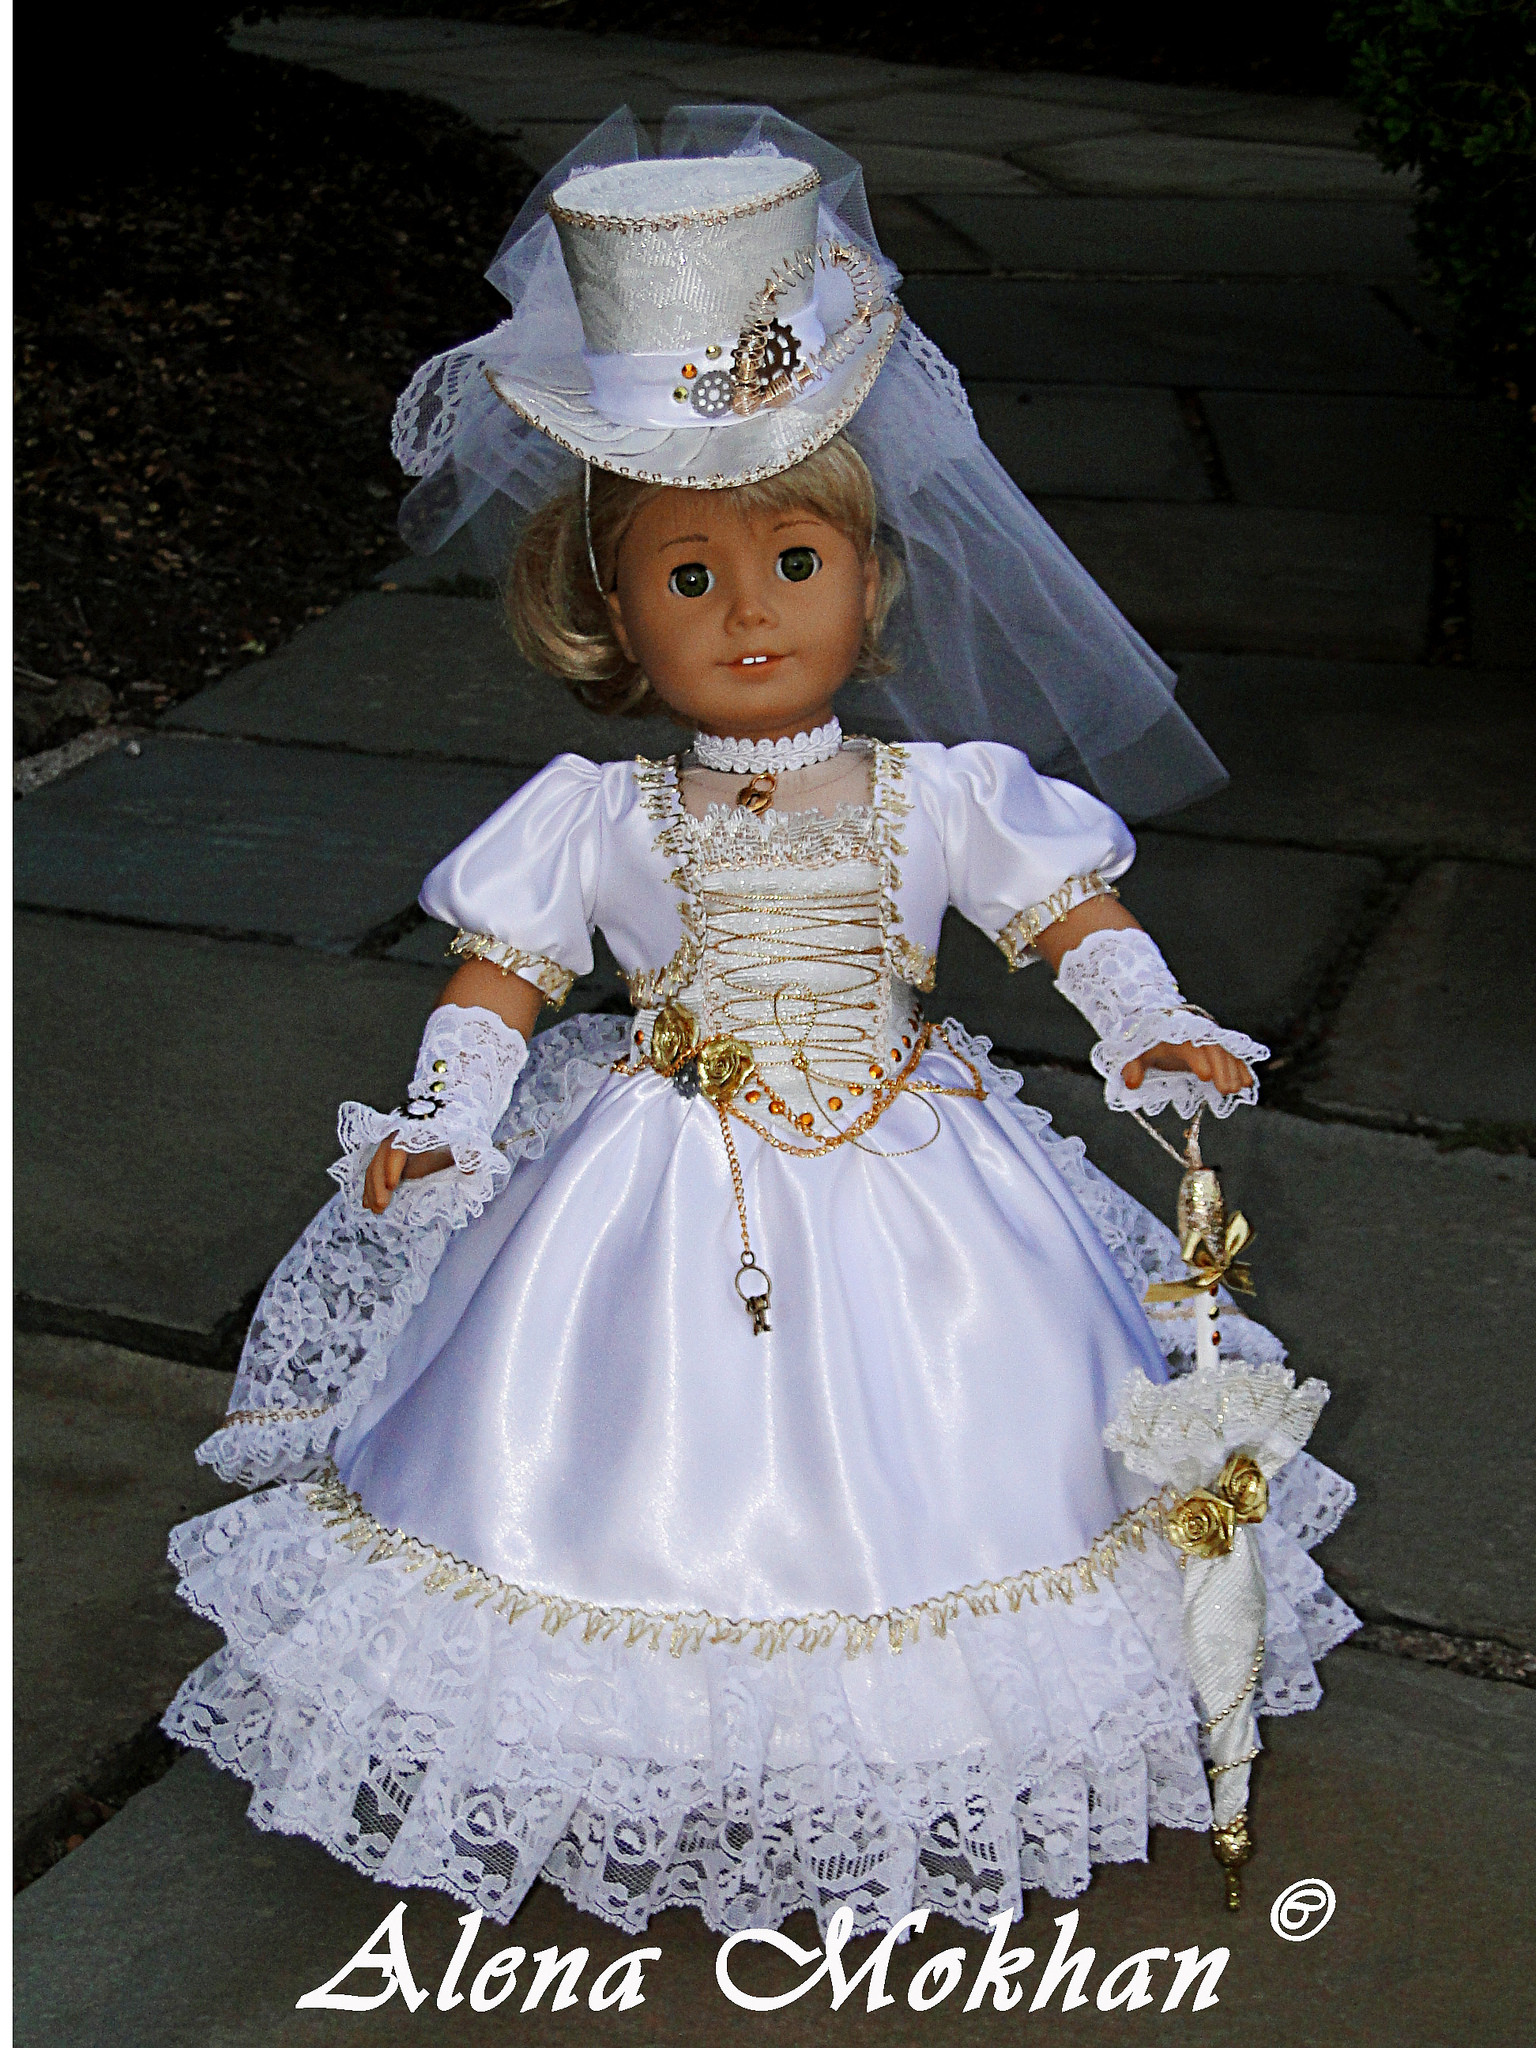 Lovely Steampunk Victorian Wedding Dress for American Girl or O American Girl Doll Wedding Dress Of Best Of White Munion Wedding Dress formal Spring Church Fits 18 American Girl Doll Wedding Dress